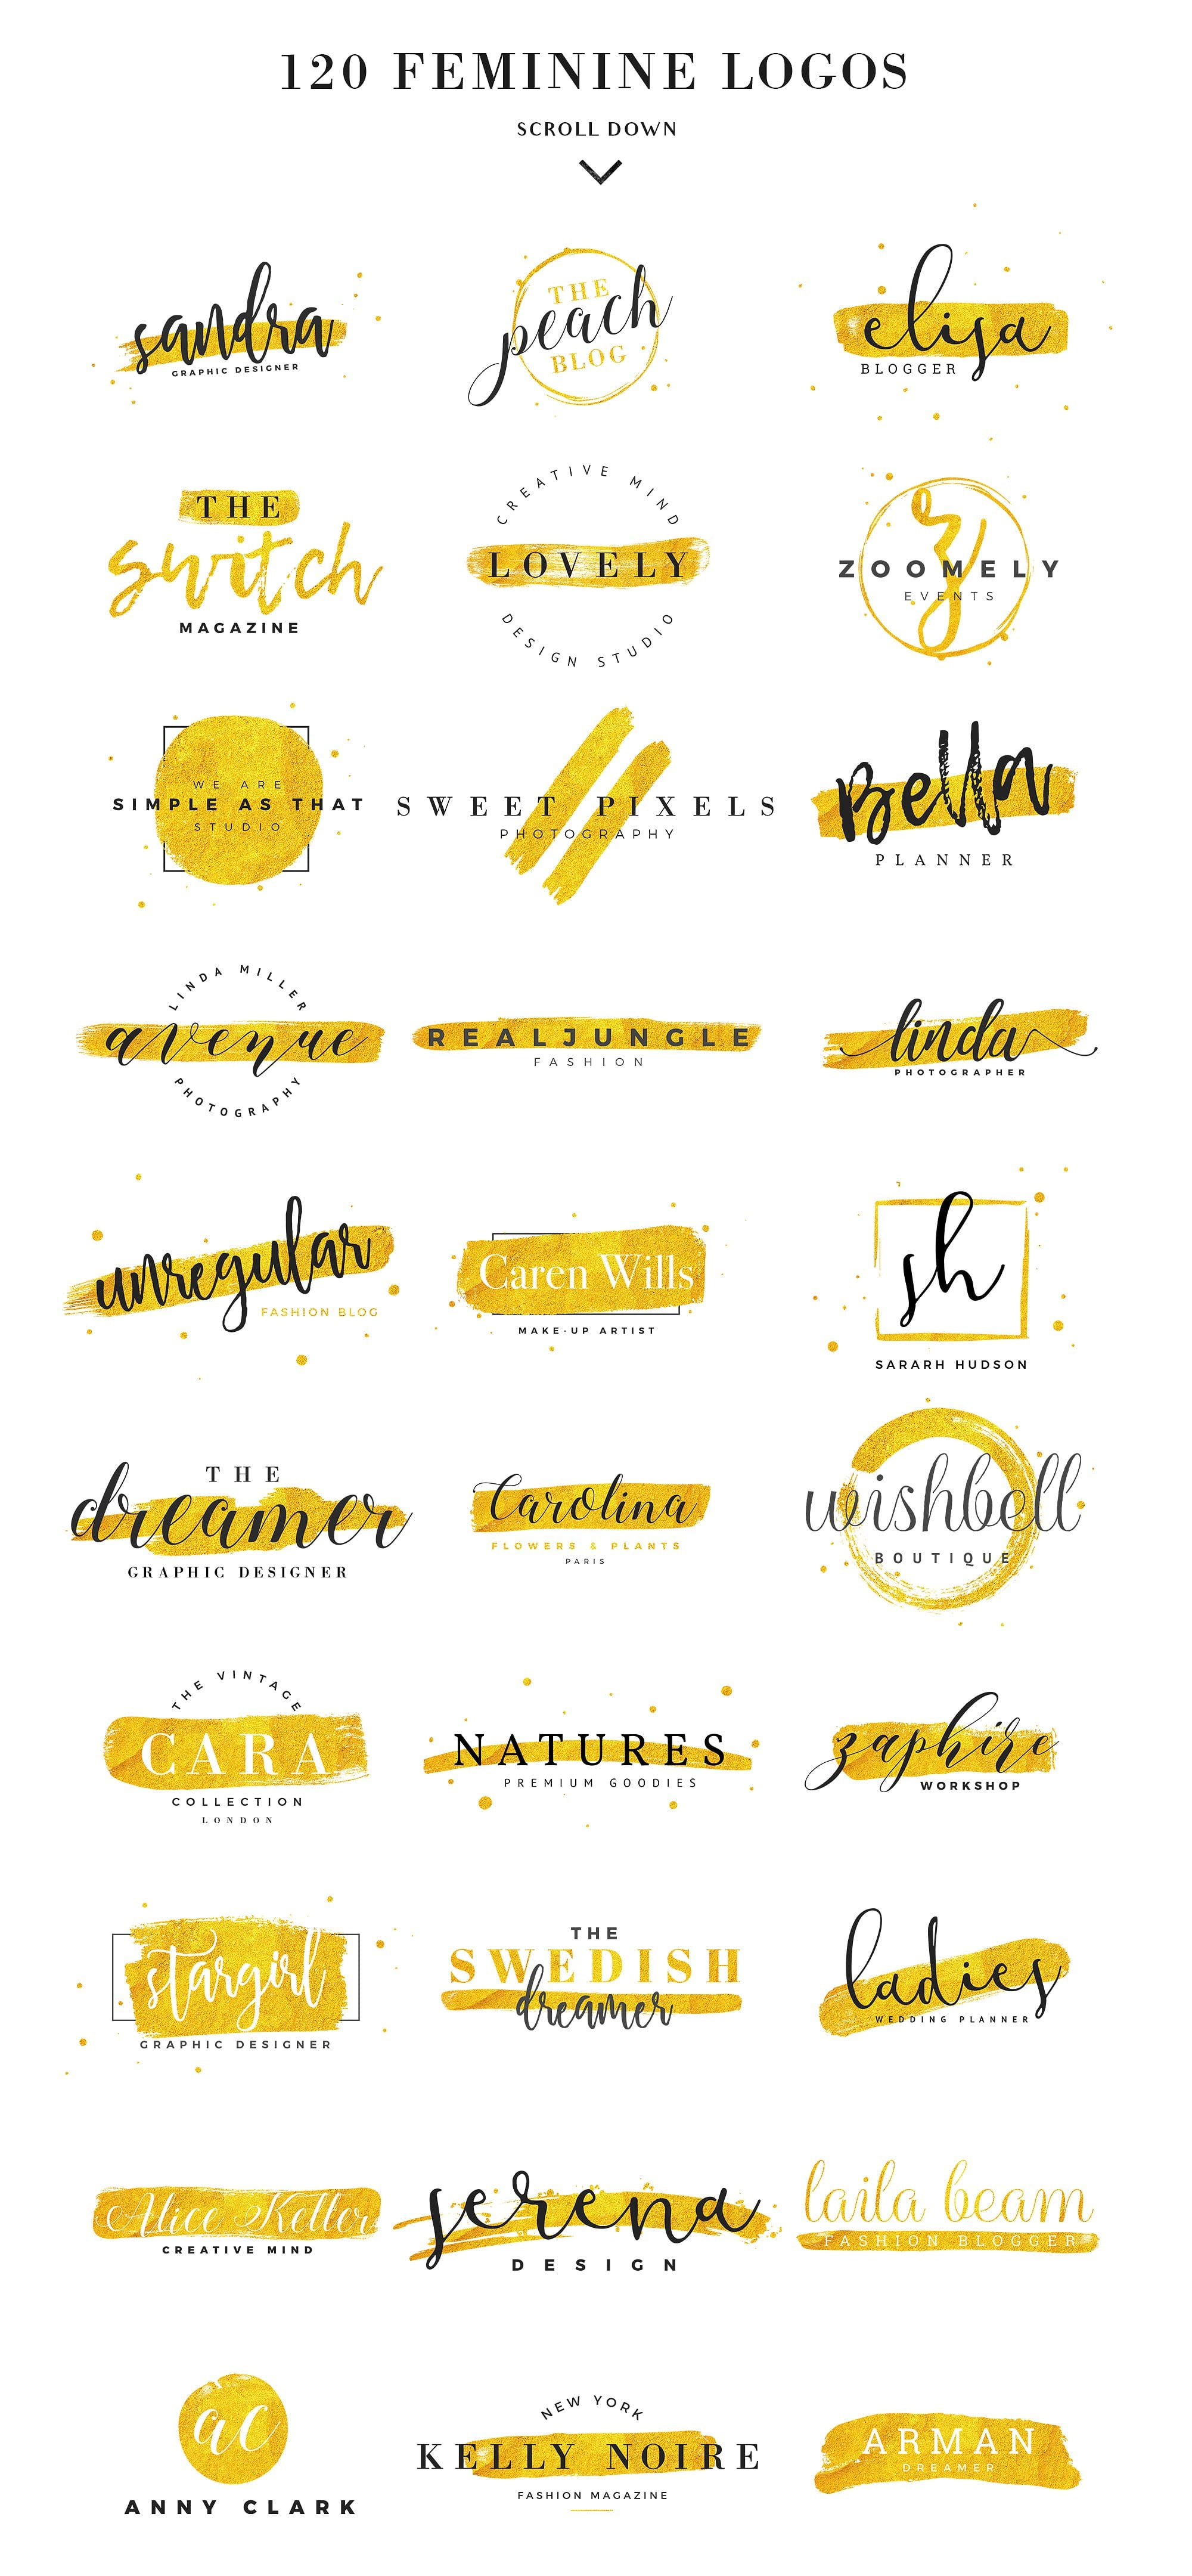 Feminine Branding Logos by David Bassu is a beautiful collection of premium blog style feminine logo templates. Includes 120 feminine modern logos you can customize using Photoshop & Illustrator. Bonus: 25 high quality textures that will really spice up your logo design. Shop online at Jennifer-Franklin.com/shop.